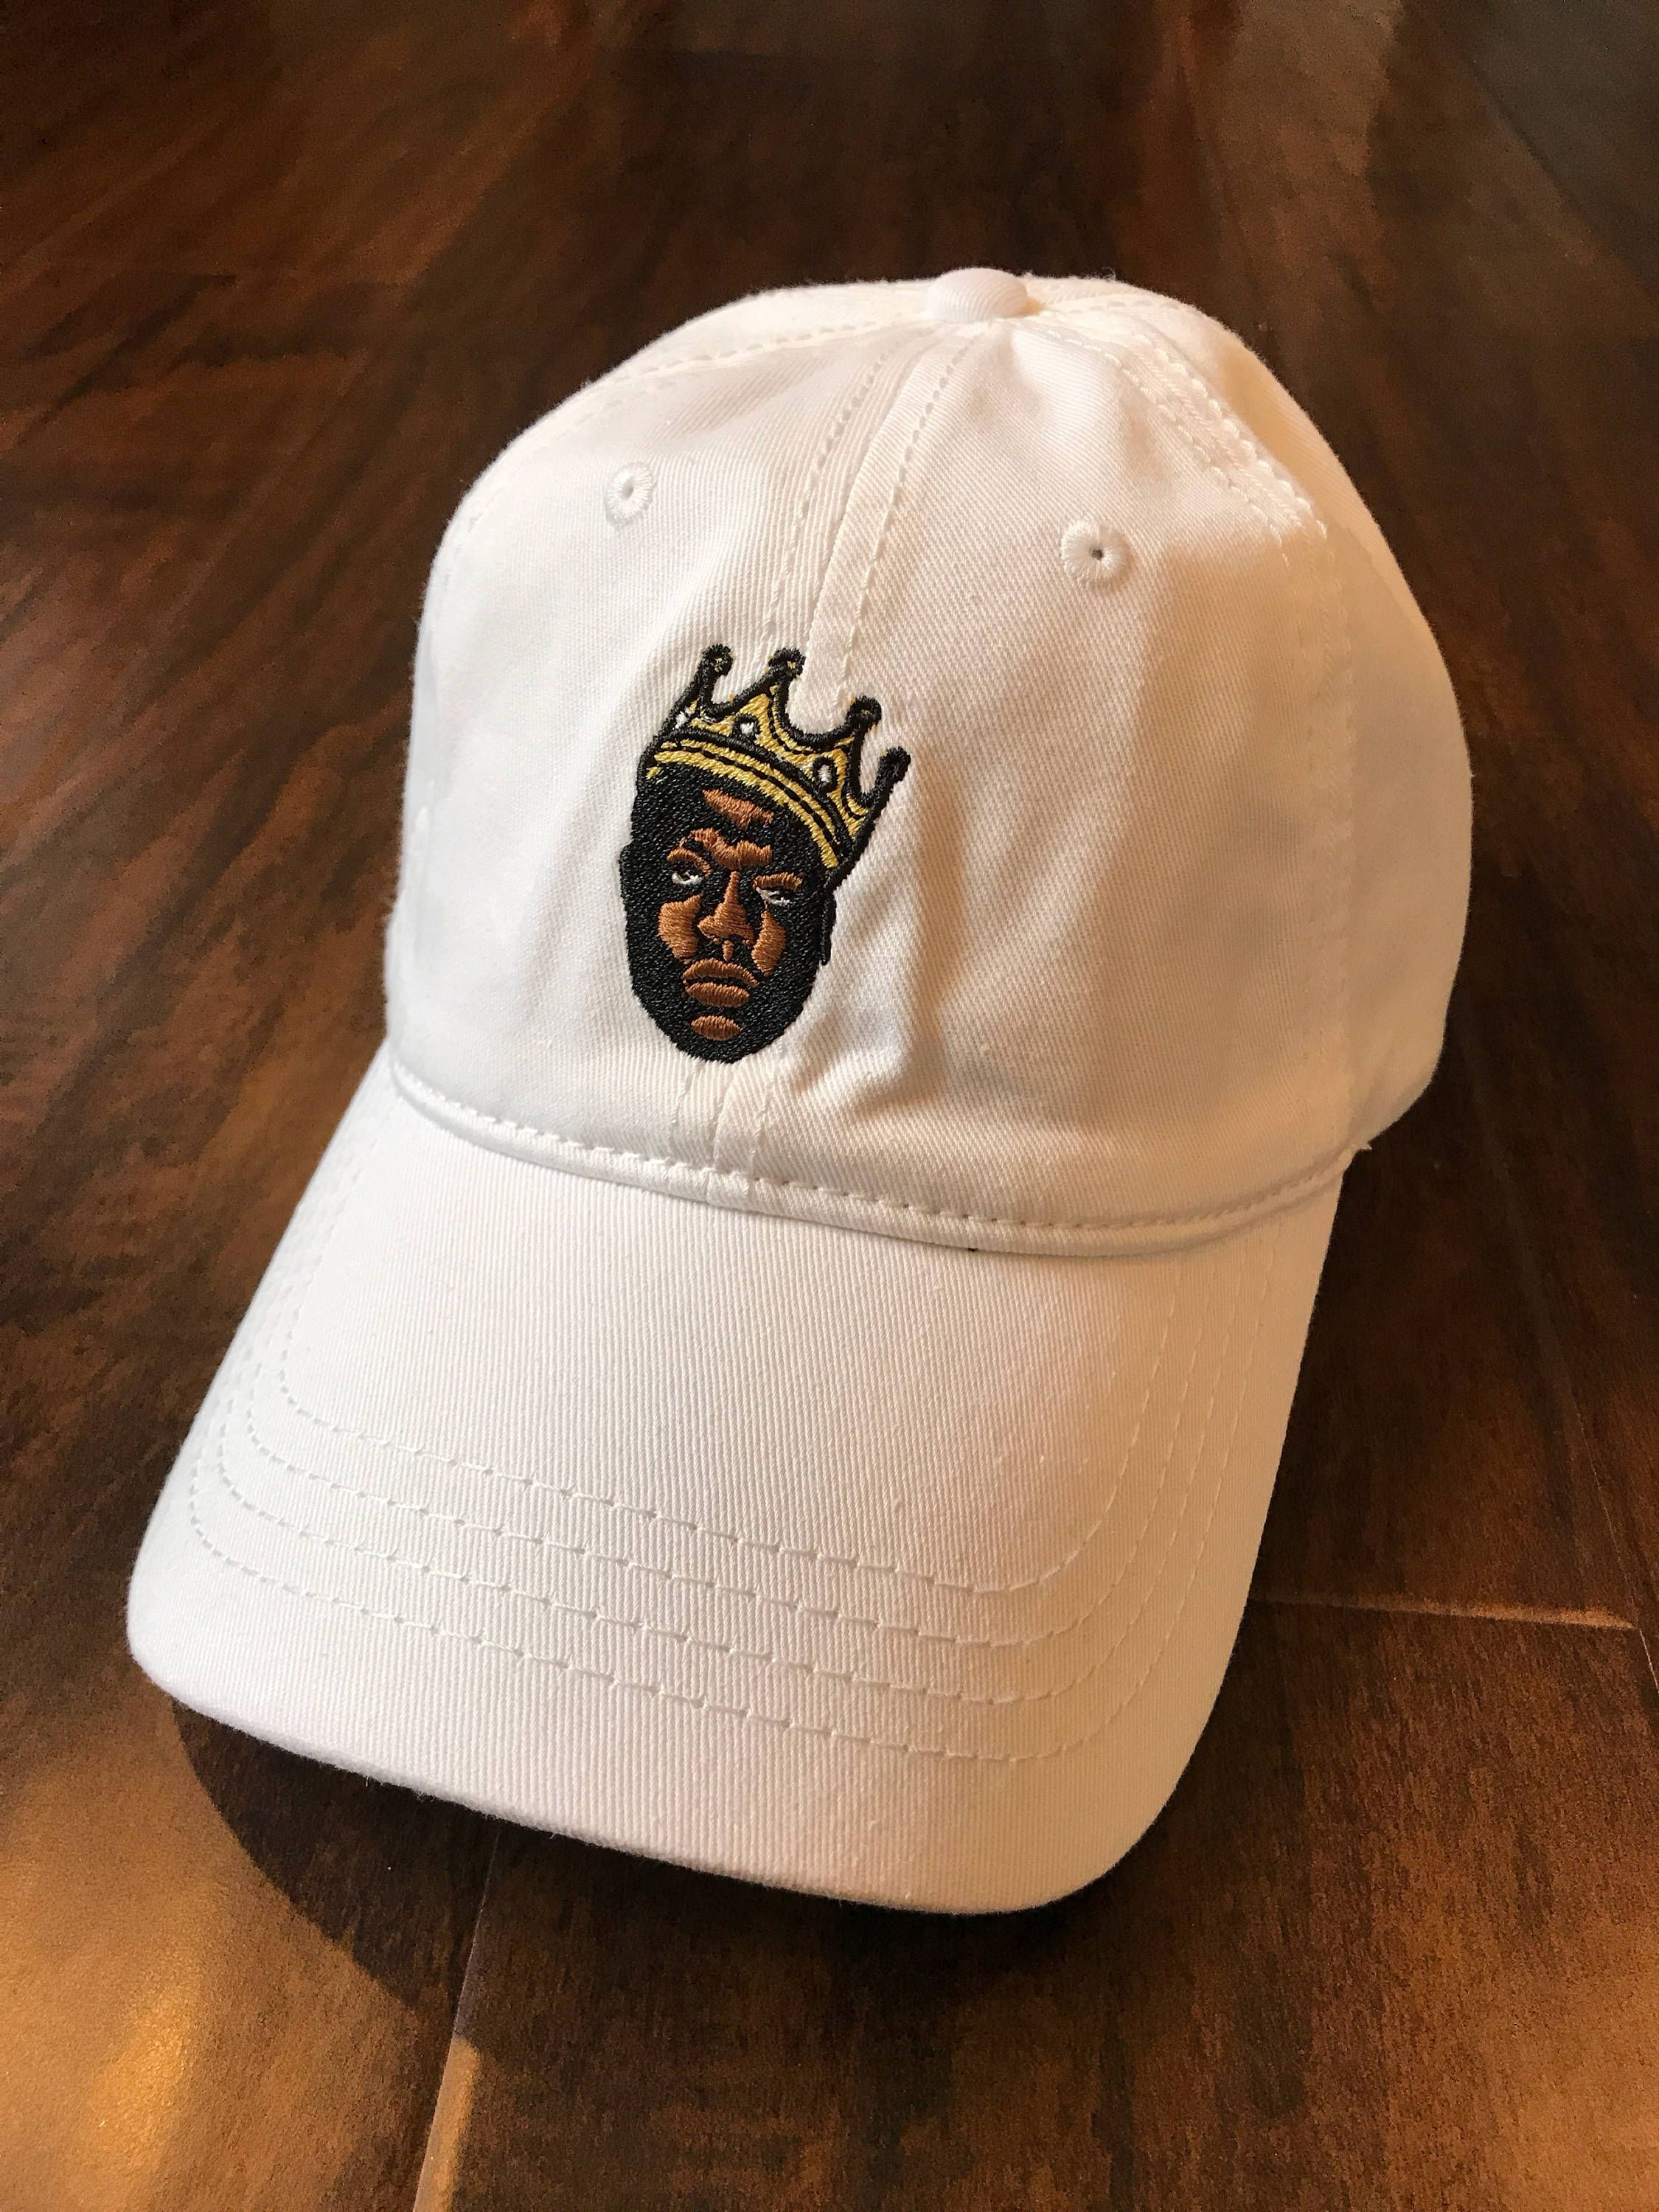 BIGGIE CAP HipHop Legendary Icon Notorious BIG embroidery